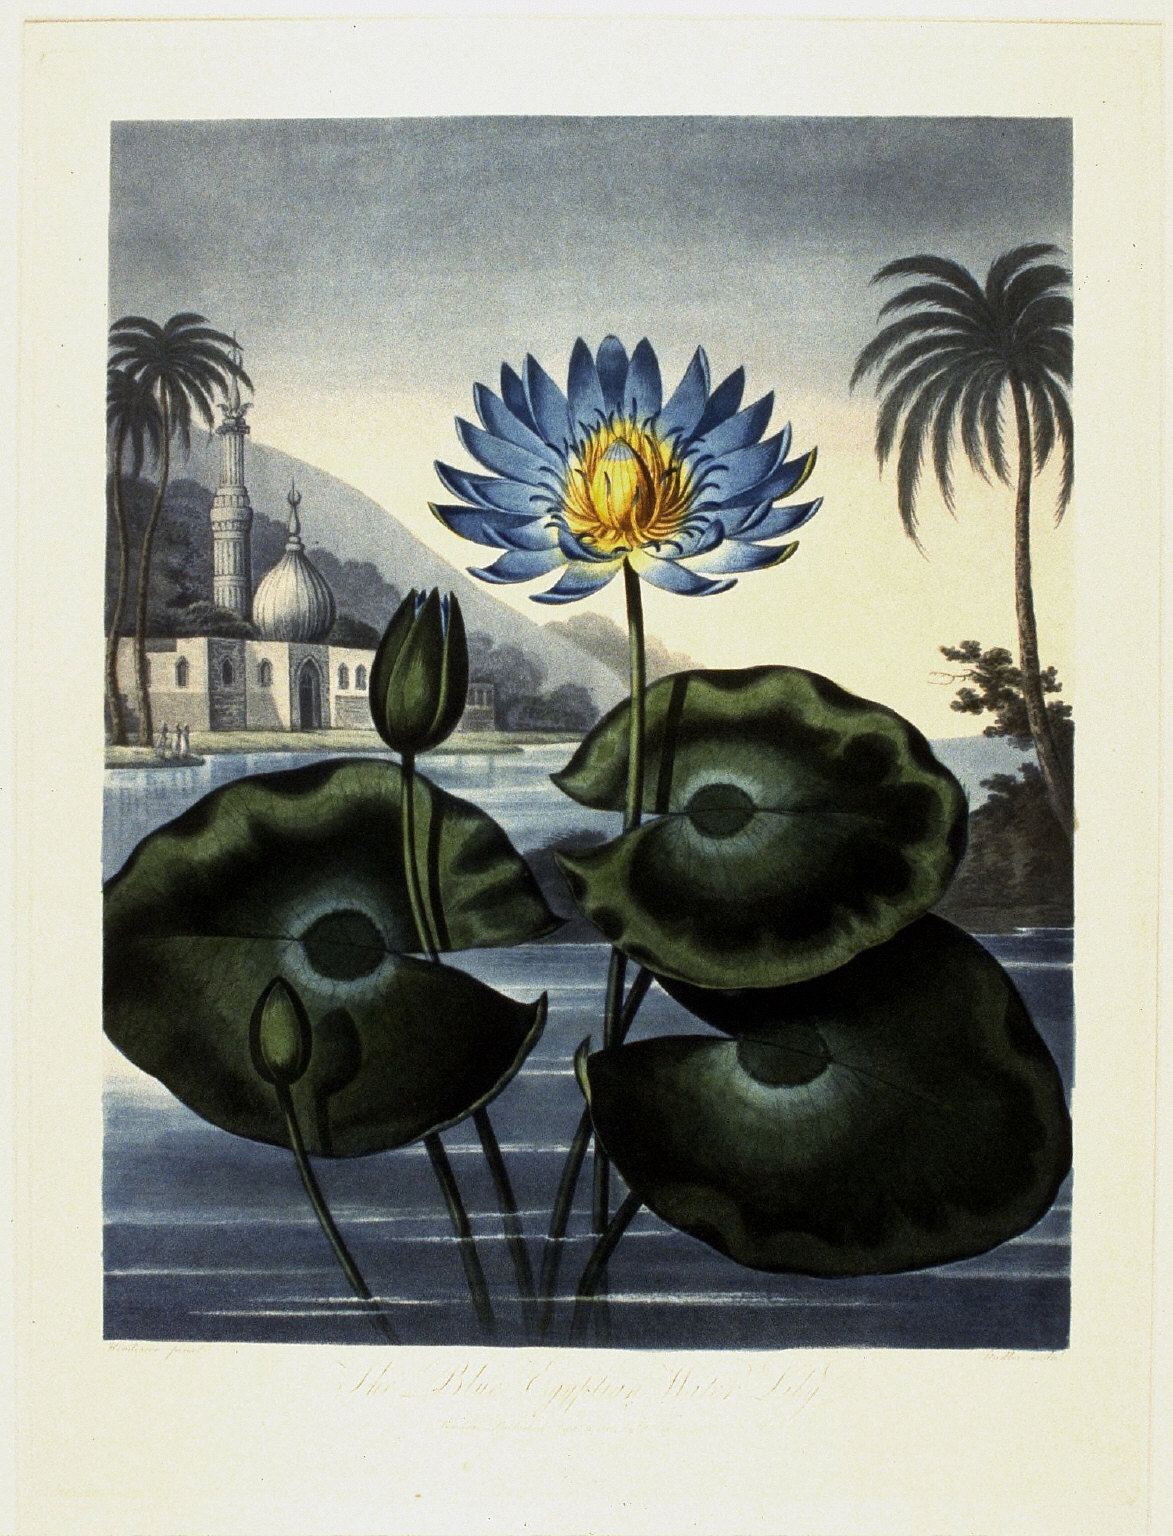 The Blue Egyptian Water Lily, from the book The Temple of Flora or Garden of Nature